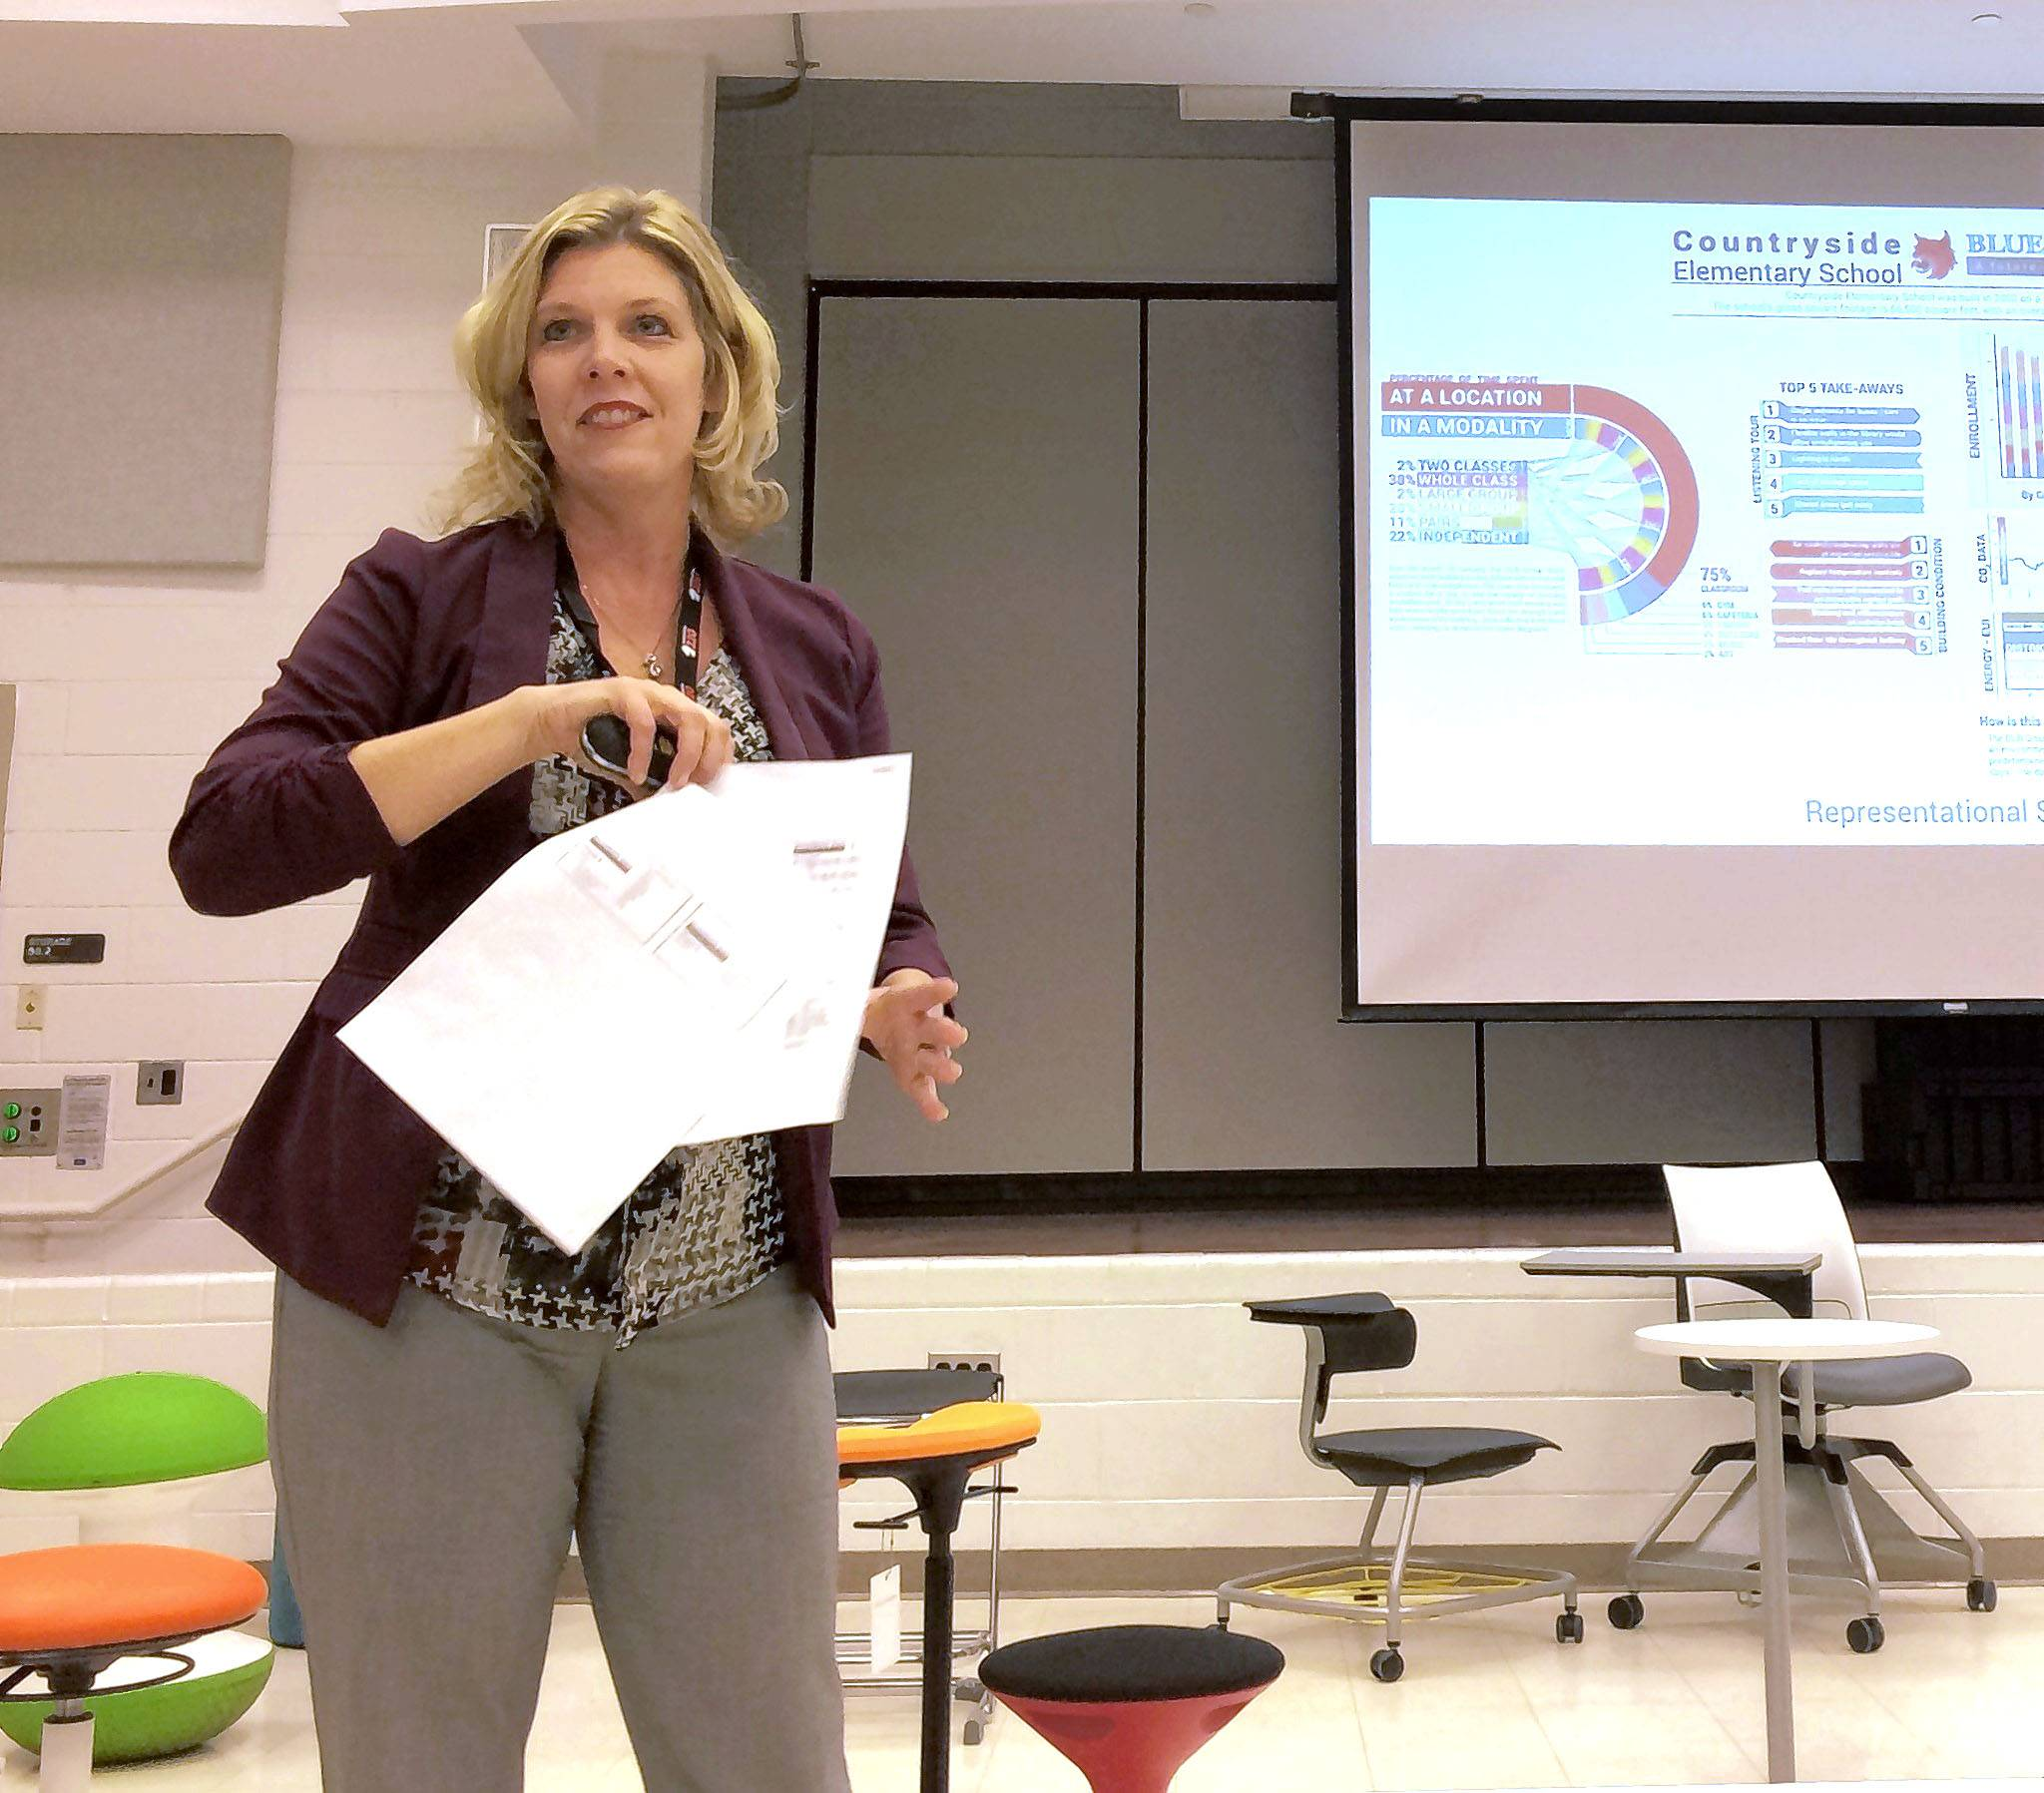 First Blueprint 220 presentation held at Countryside Elementary